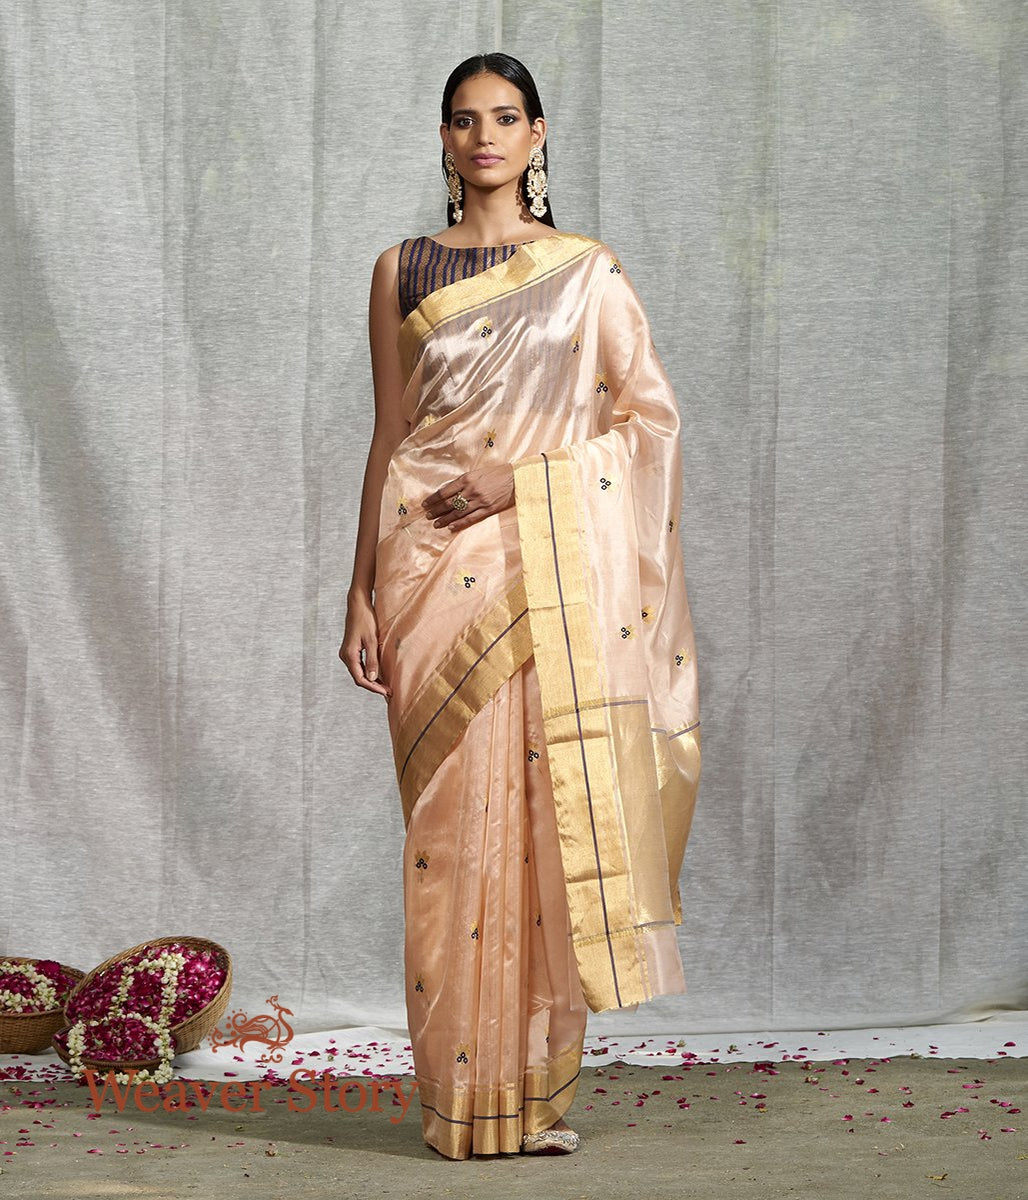 Handwoven Light Peach Floral Booti Saree with Blue Meenakari